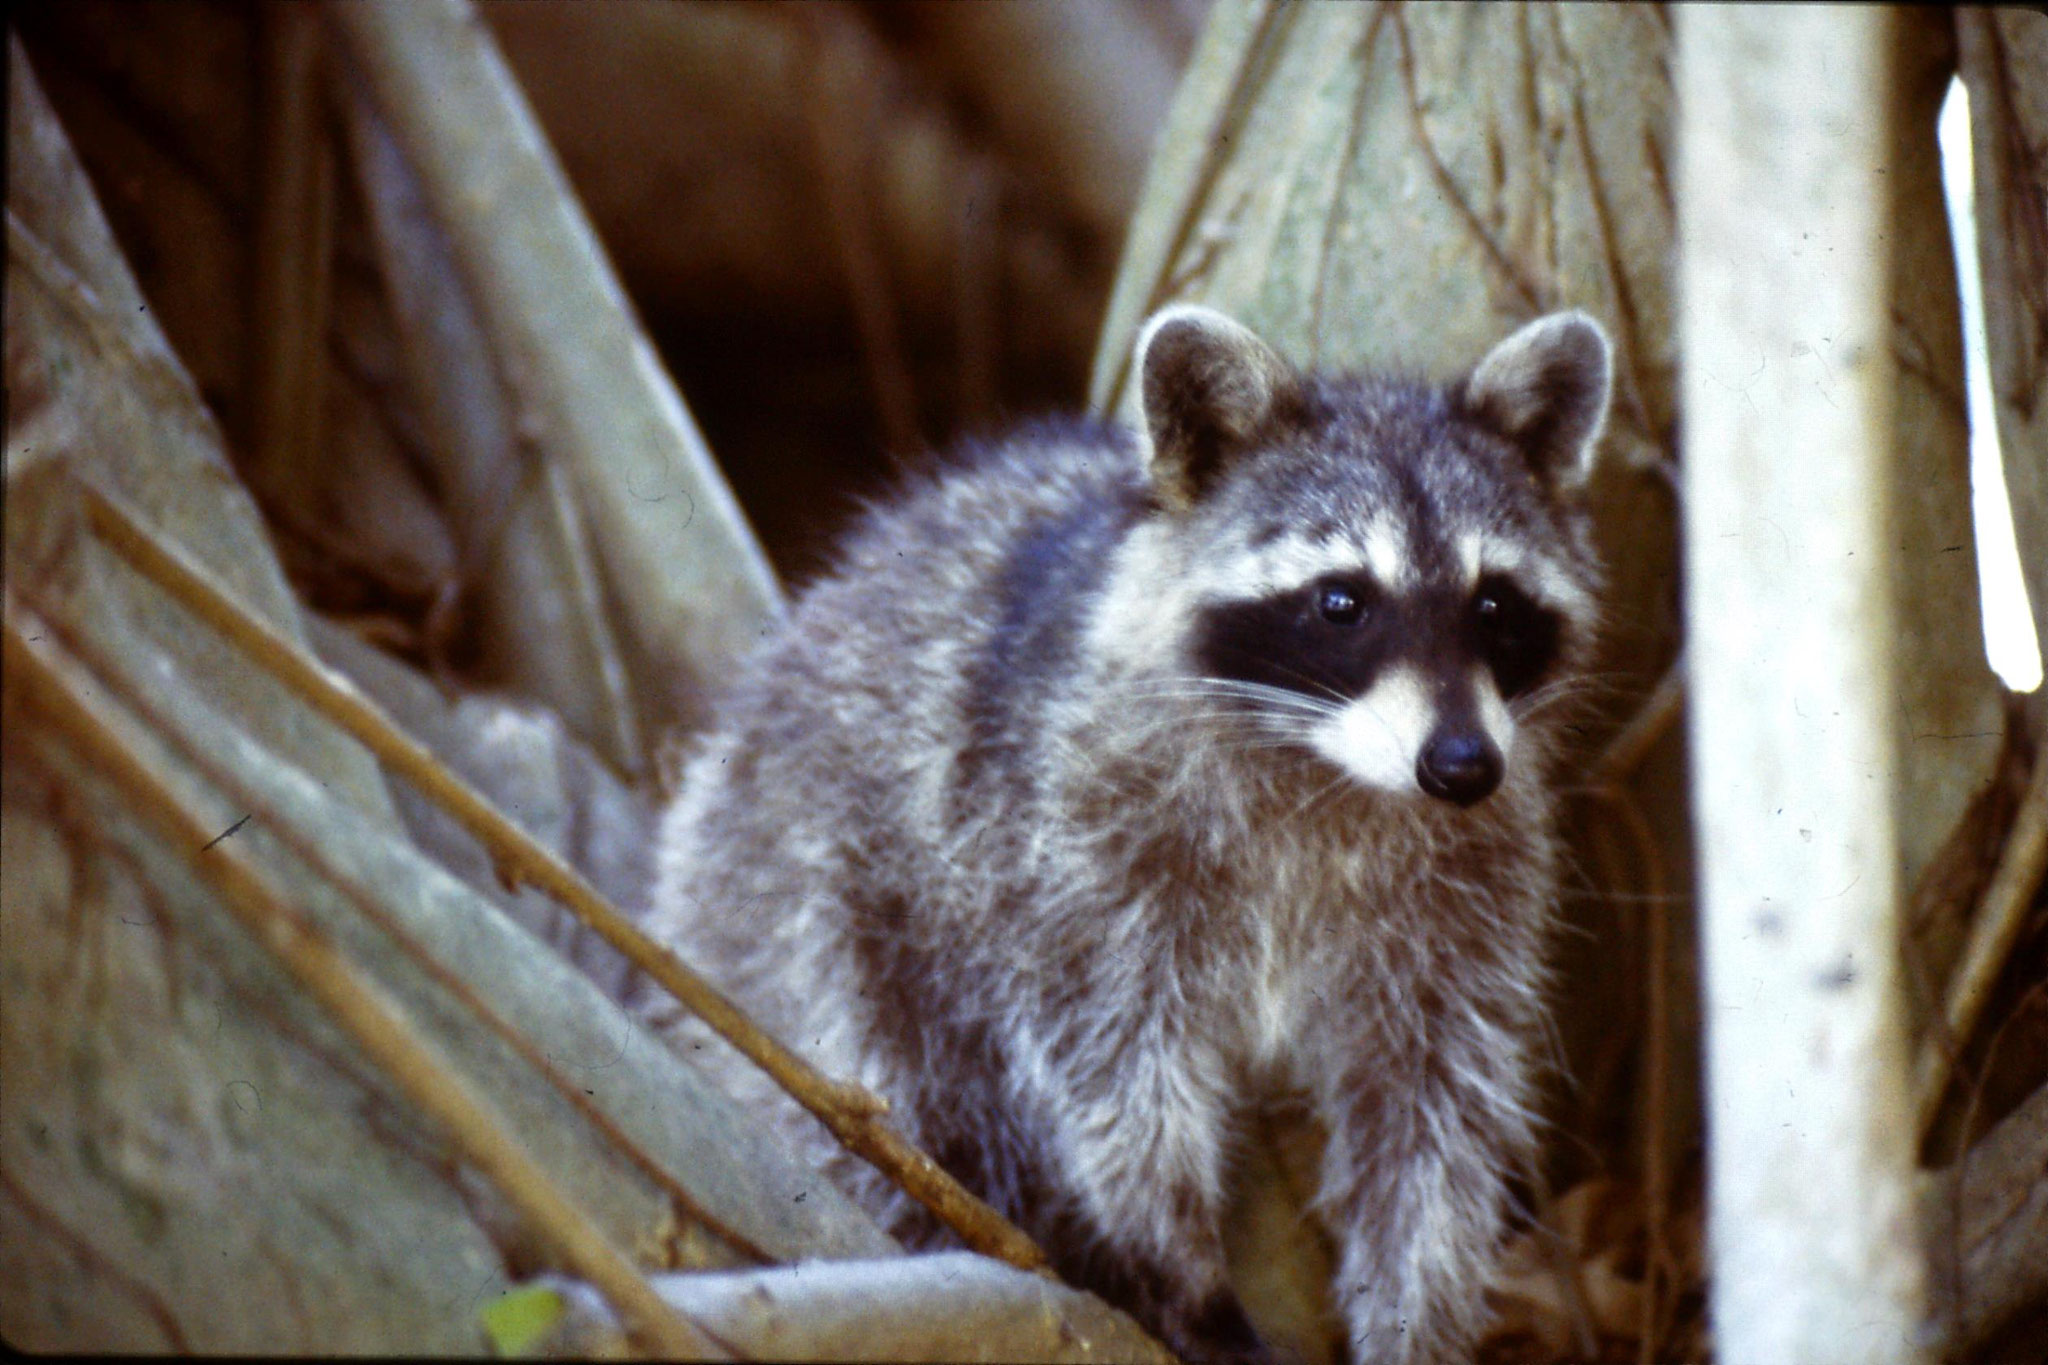 8/3/1991: 1: Key Biscayne raccoon